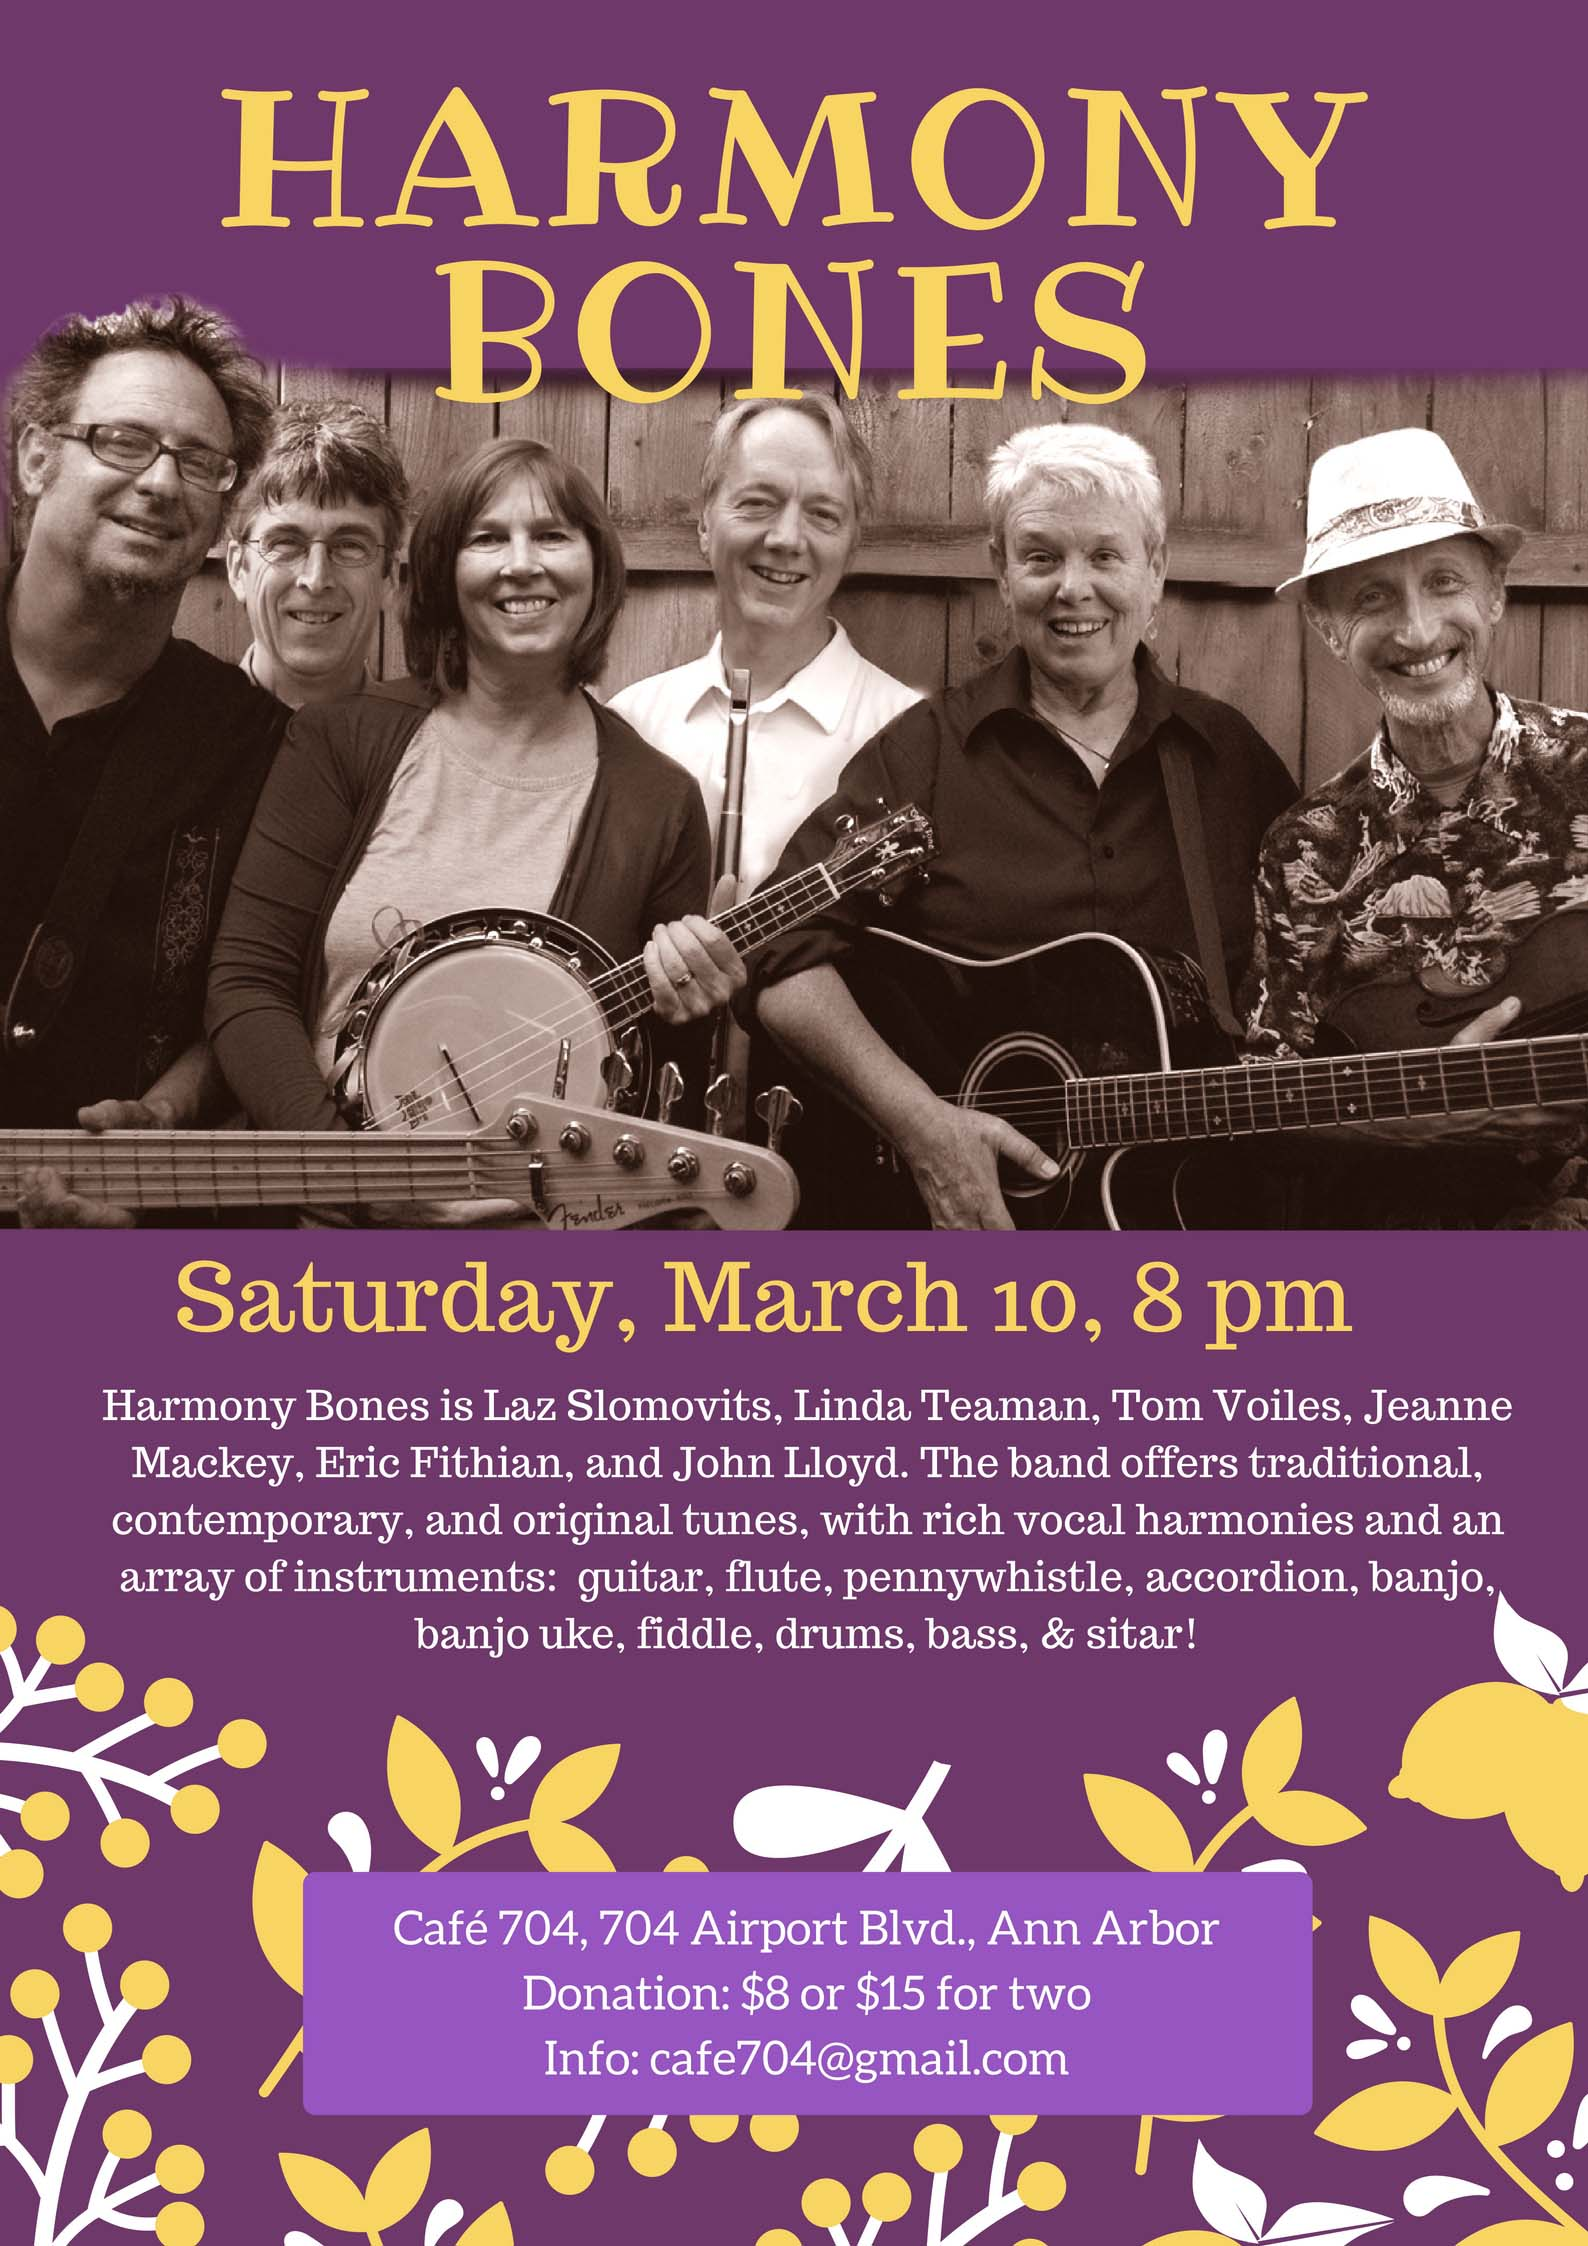 Harmony Bones performs at Cafe 704 March 10 at 8:00 p.m.